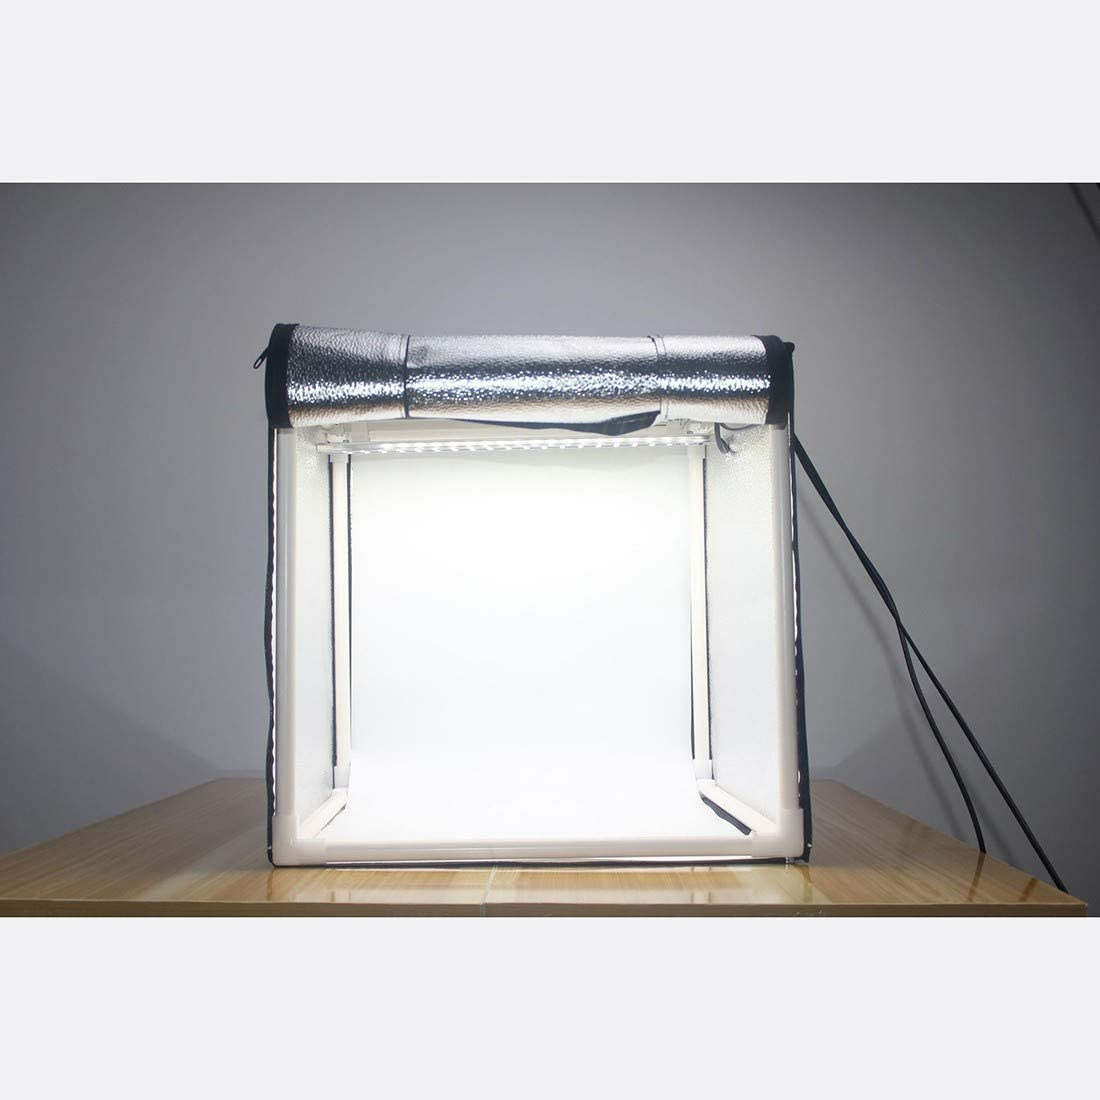 Food Shoes Photography etc HWENJ Mini Portable Photography Studio Light Tent for Jewellery Photography Studio Light Box Shooting Tent Kit , with LED Light